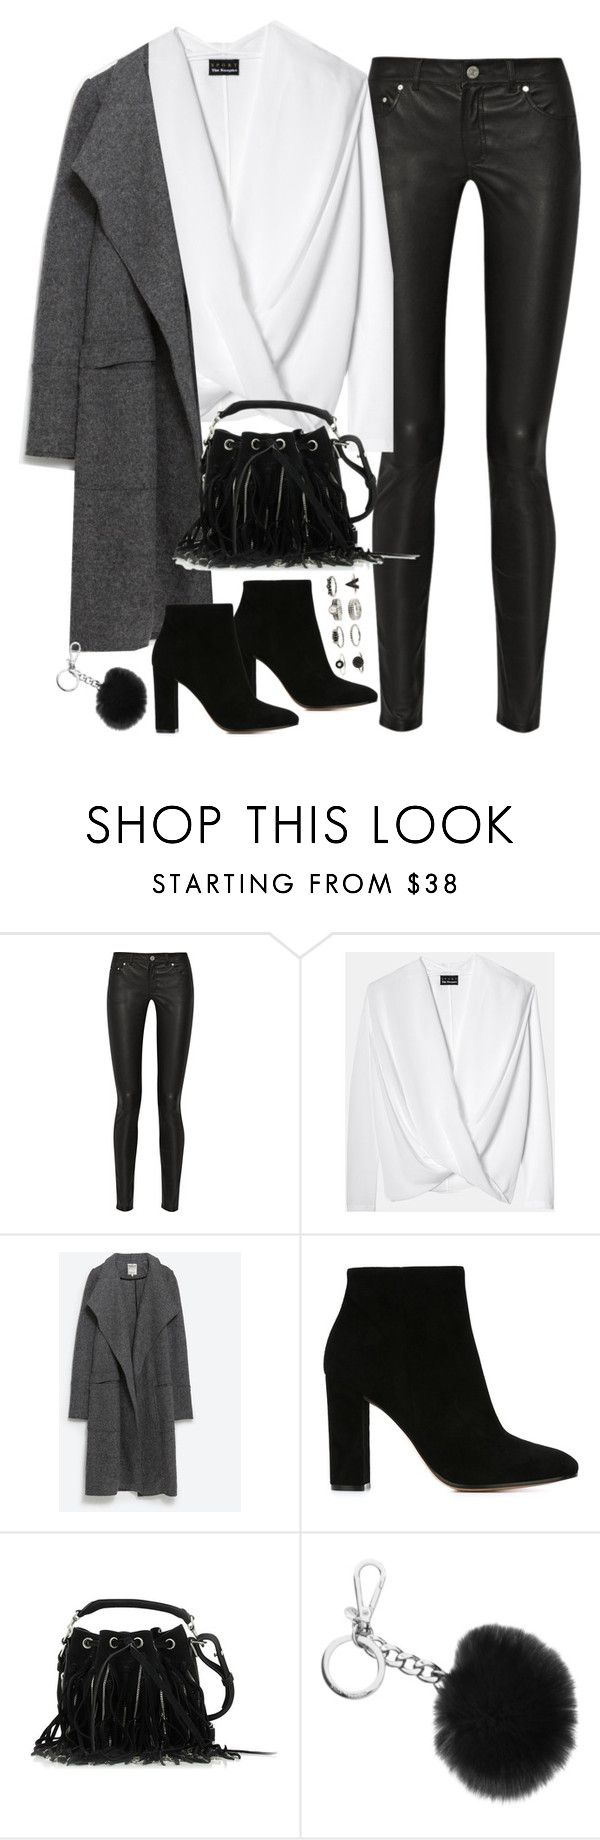 """Untitled#4268"" by fashionnfacts ❤ liked on Polyvore featuring Acne Studios, Zara, Gianvito Rossi, Yves Saint Laurent and Michael Kors"